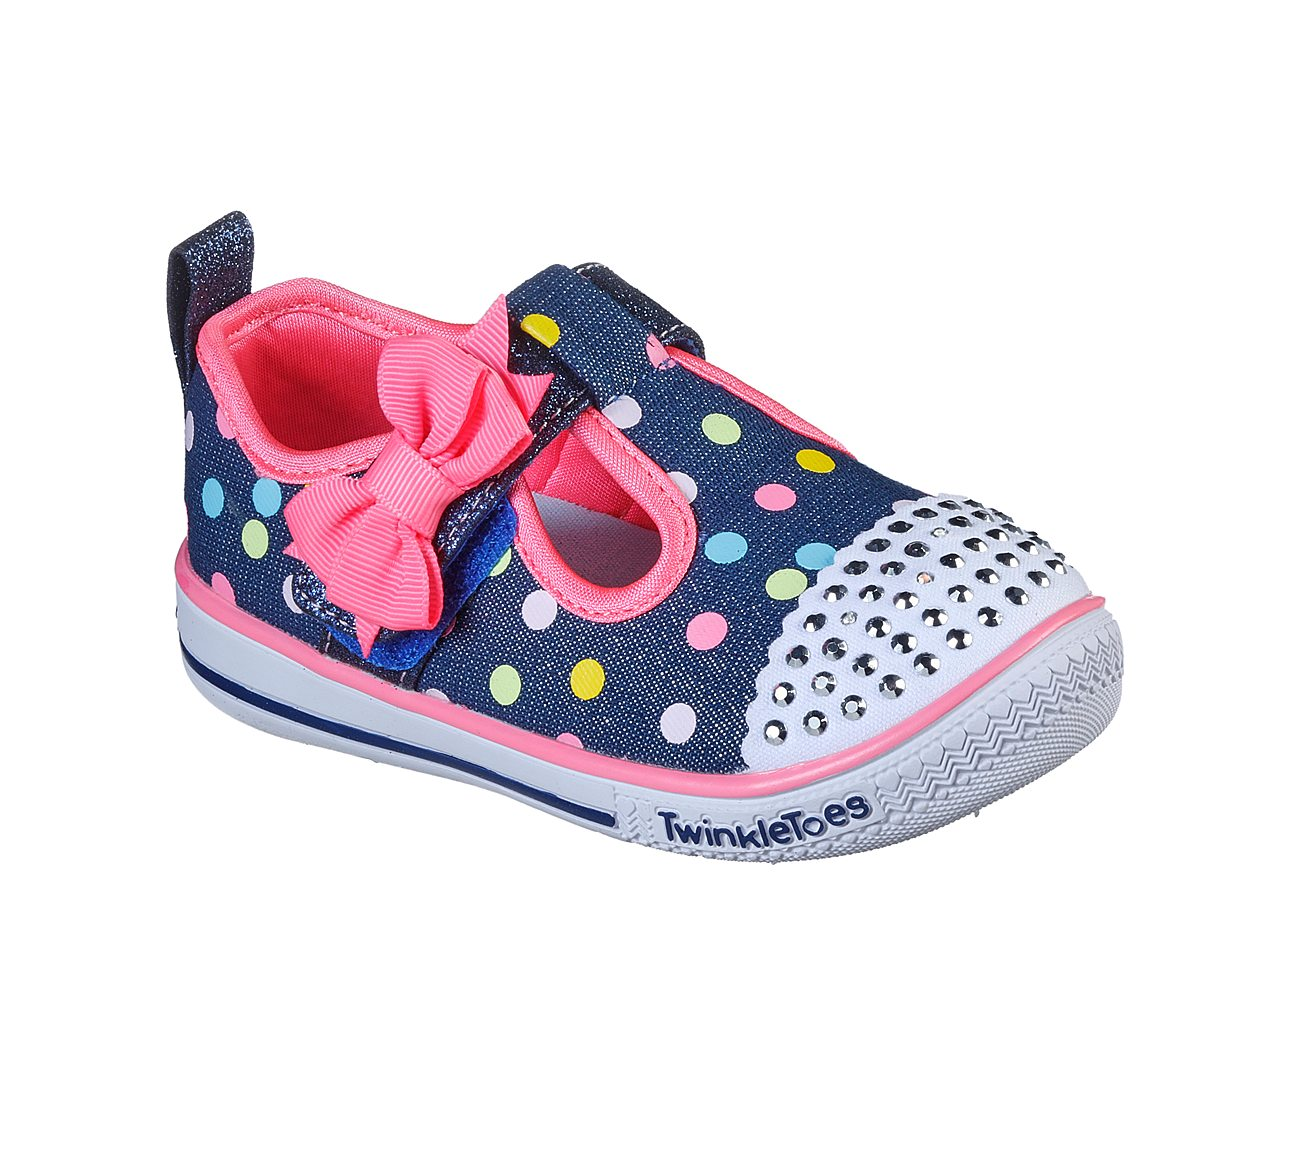 Twinkle Toes: Twinkle Play Spotty Steps